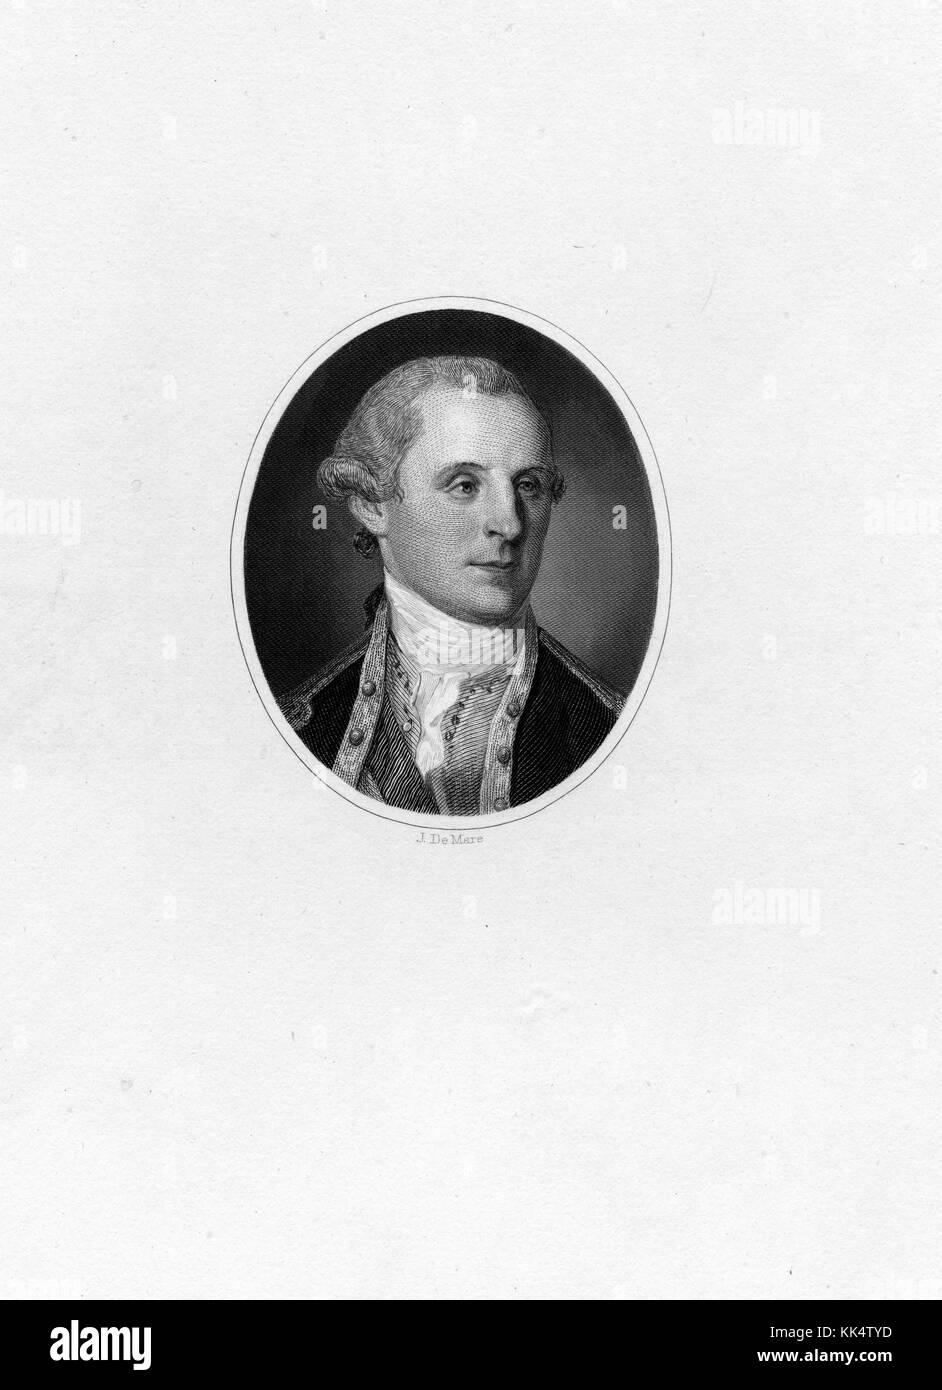 An engraving from a portrait of a young George Washington, he was the first President of the United States of America - Stock Image